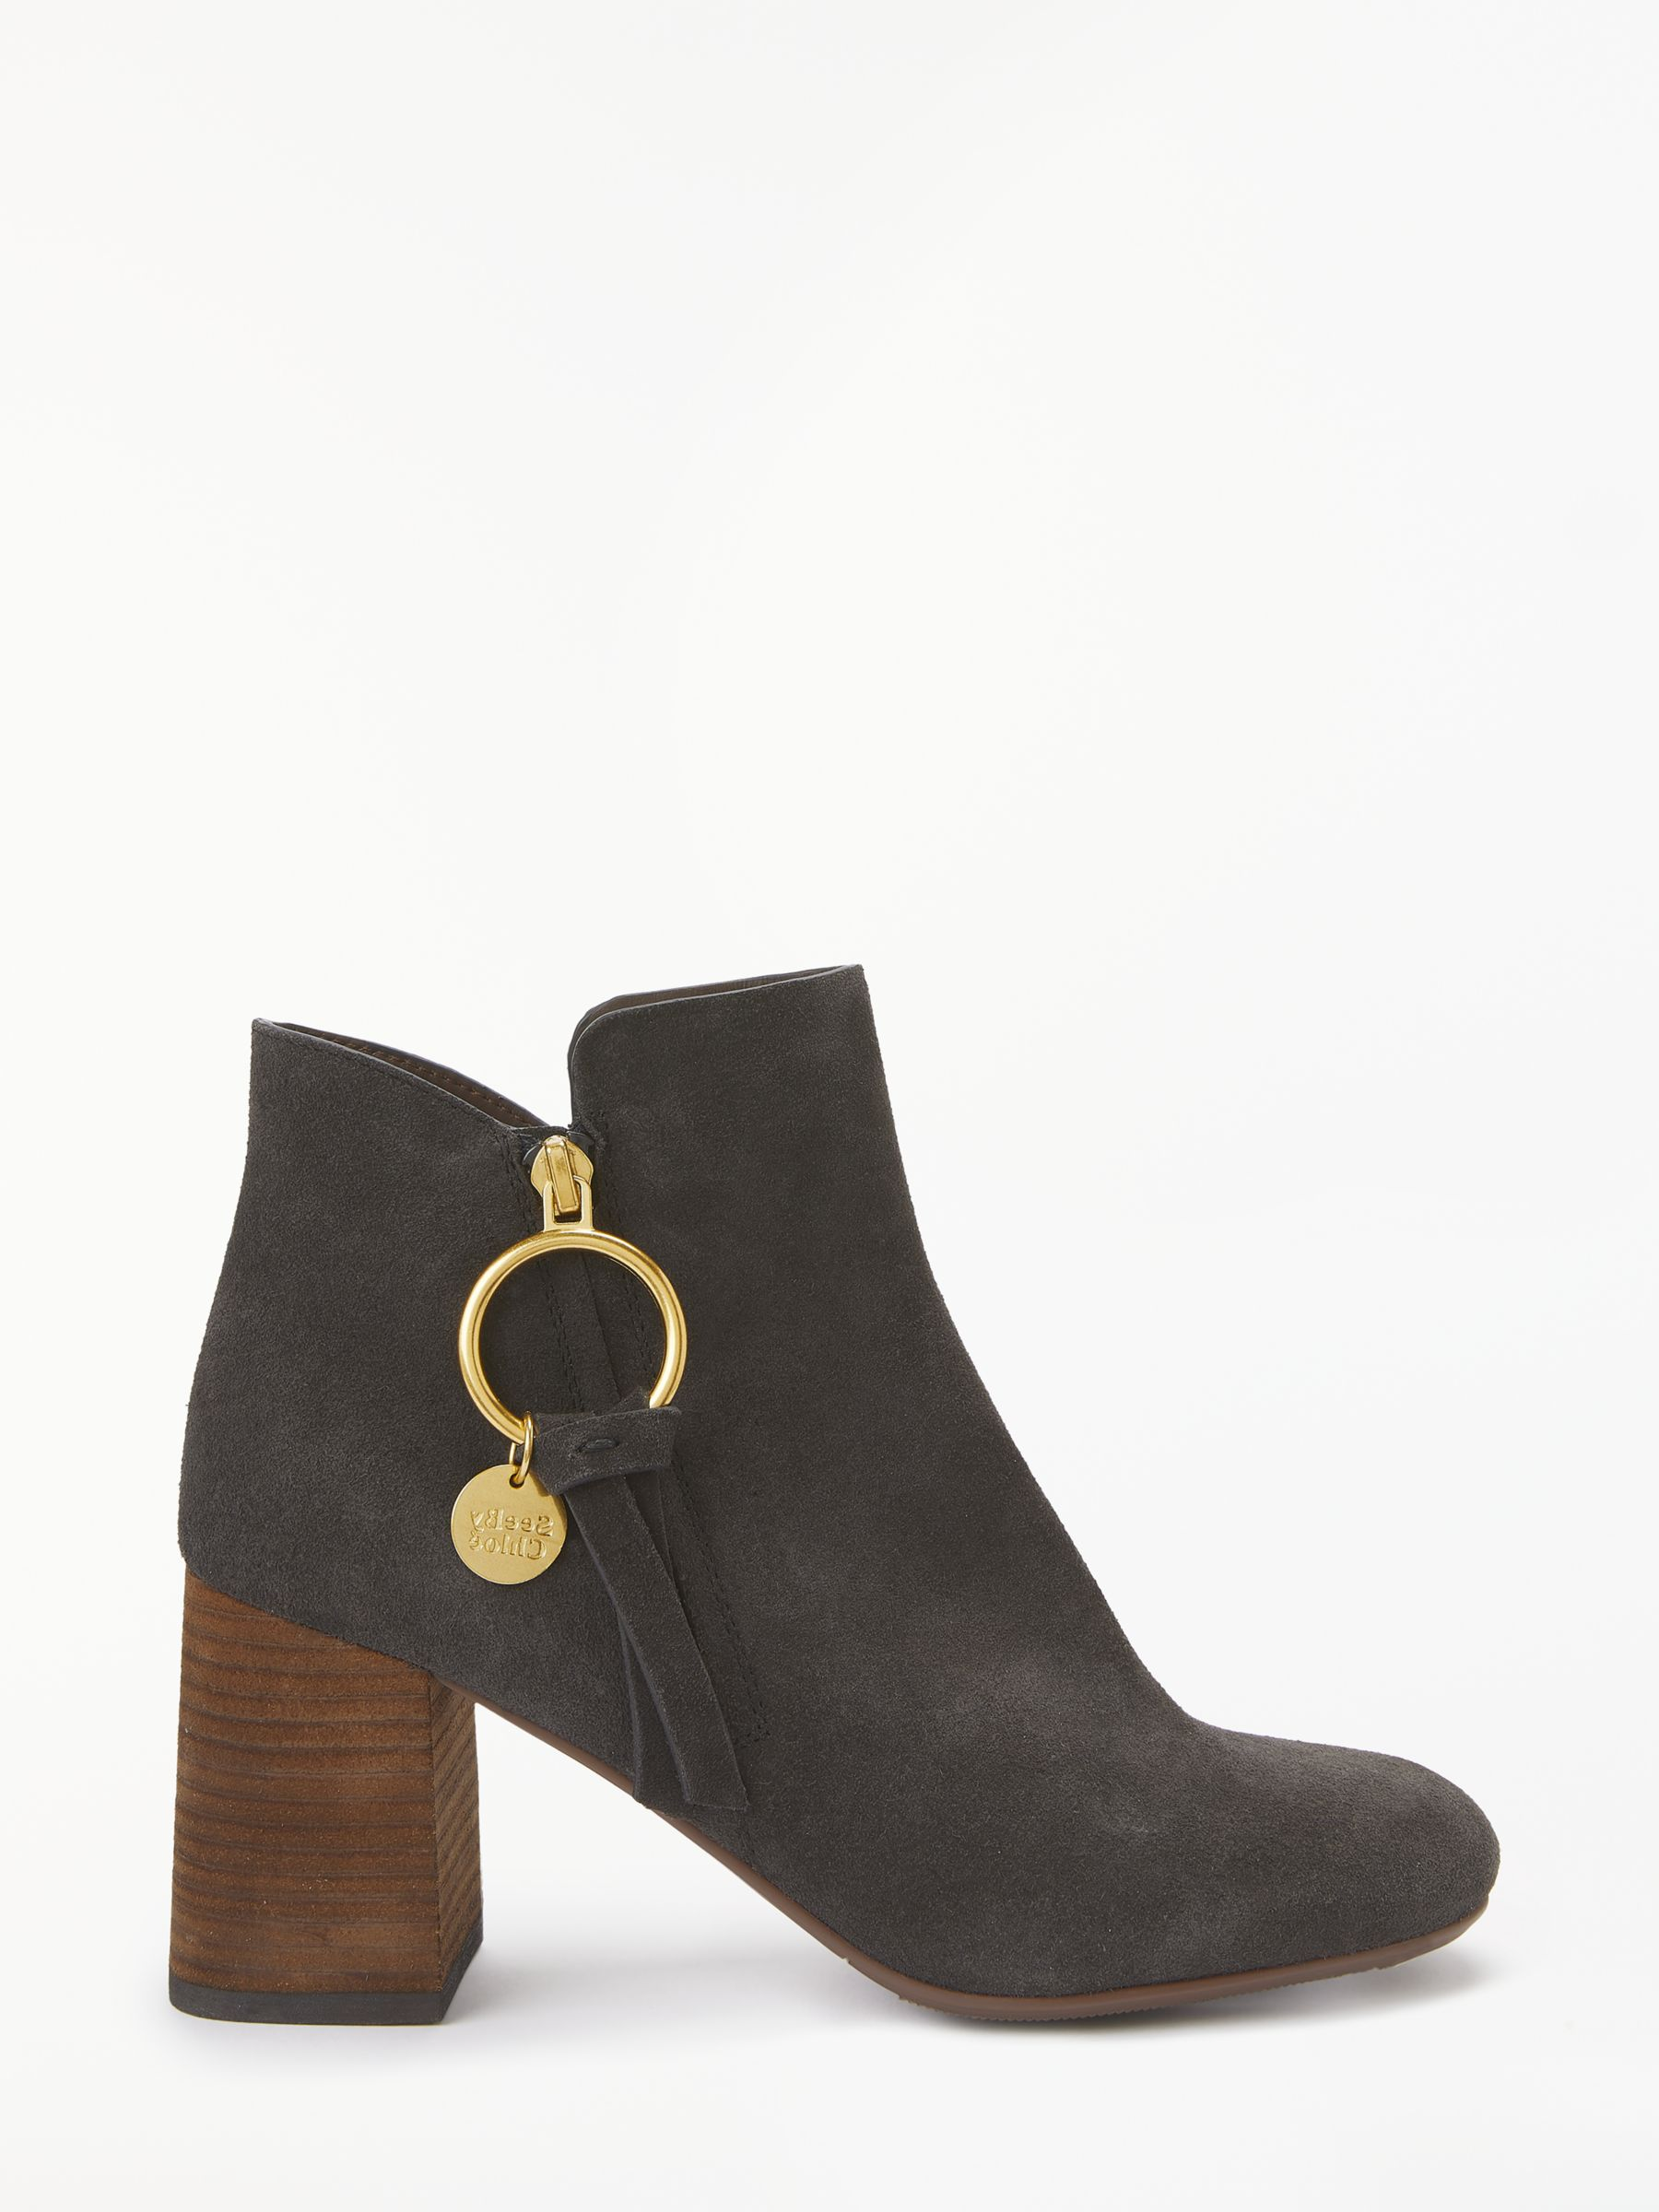 00a4a3a7c4 See By Chloé Block Heel Ankle Boots at John Lewis & Partners